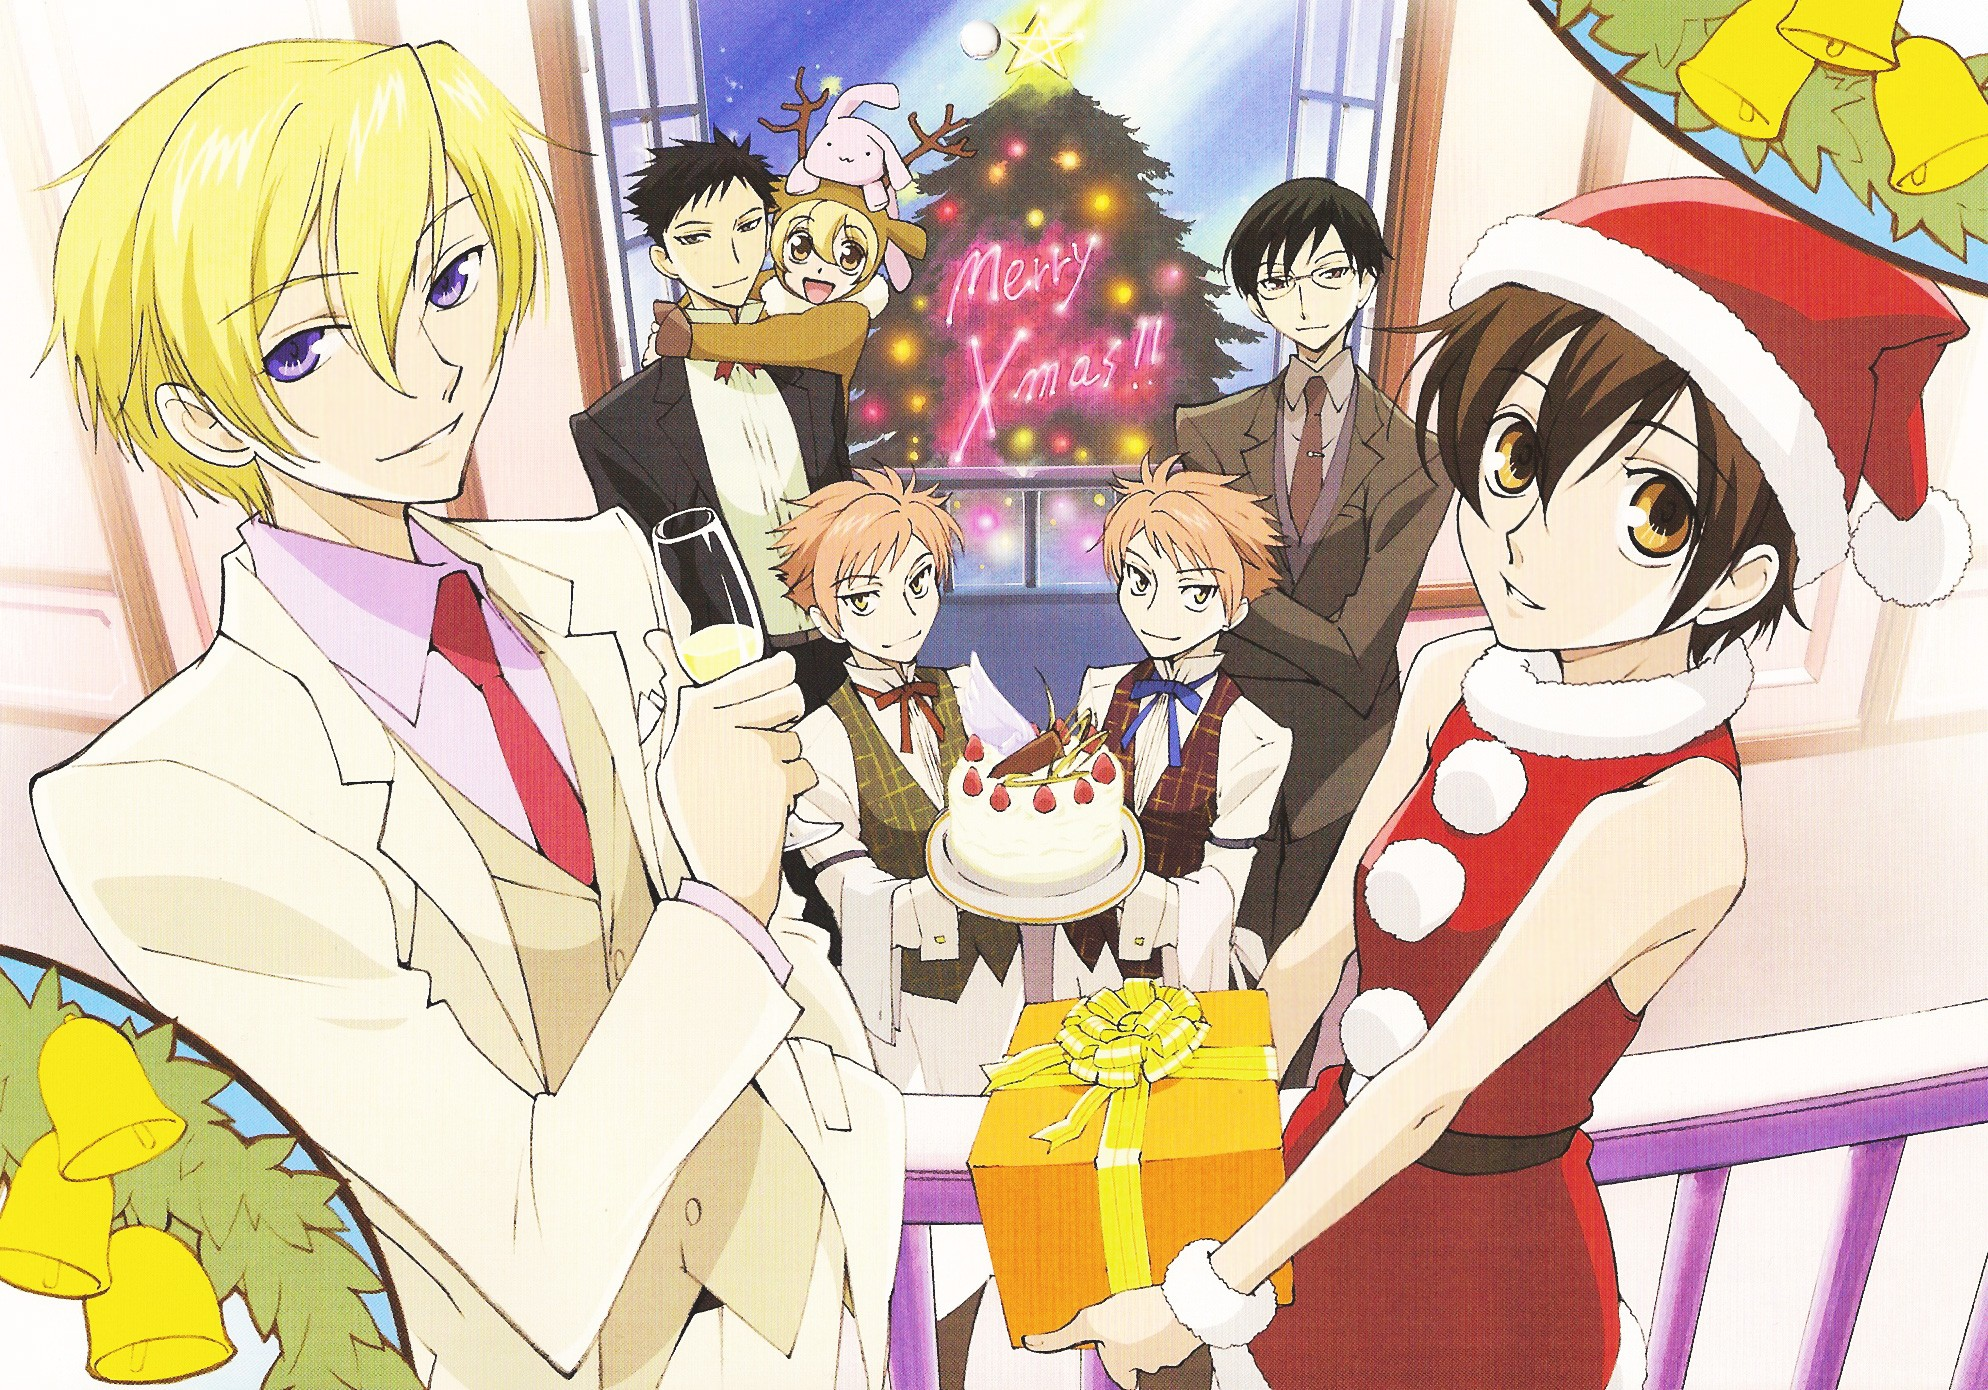 Ouran High School Host Club - Hatori Bisco - Image #1747 ...